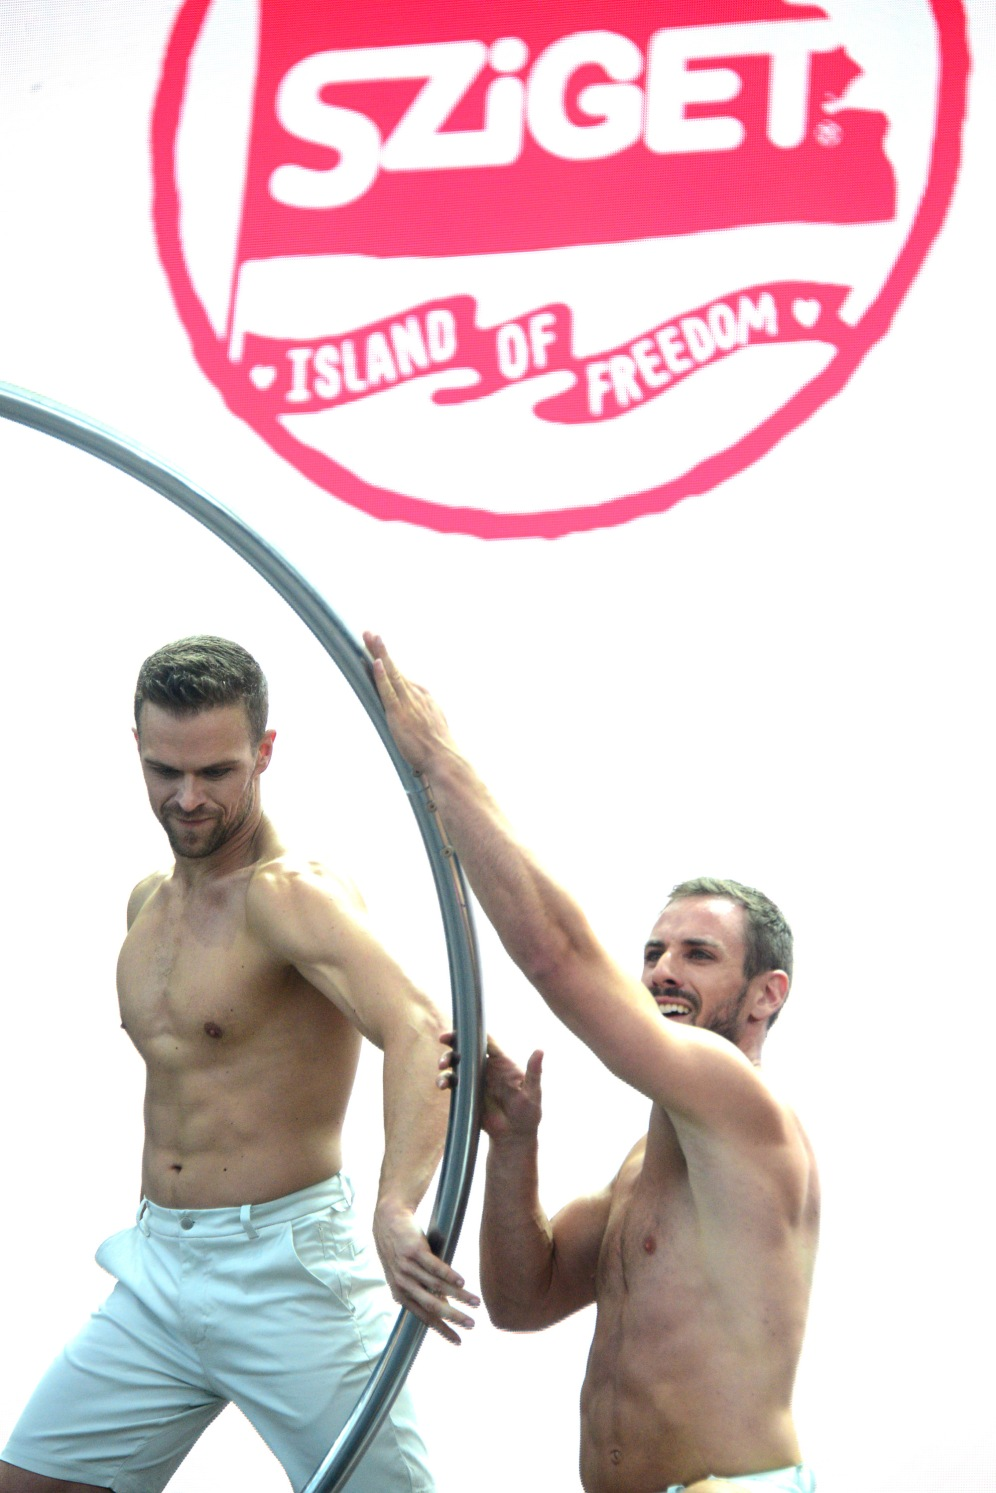 Francis Perreault /Matthew Richardson- All Love is Equal/Sziget 2019